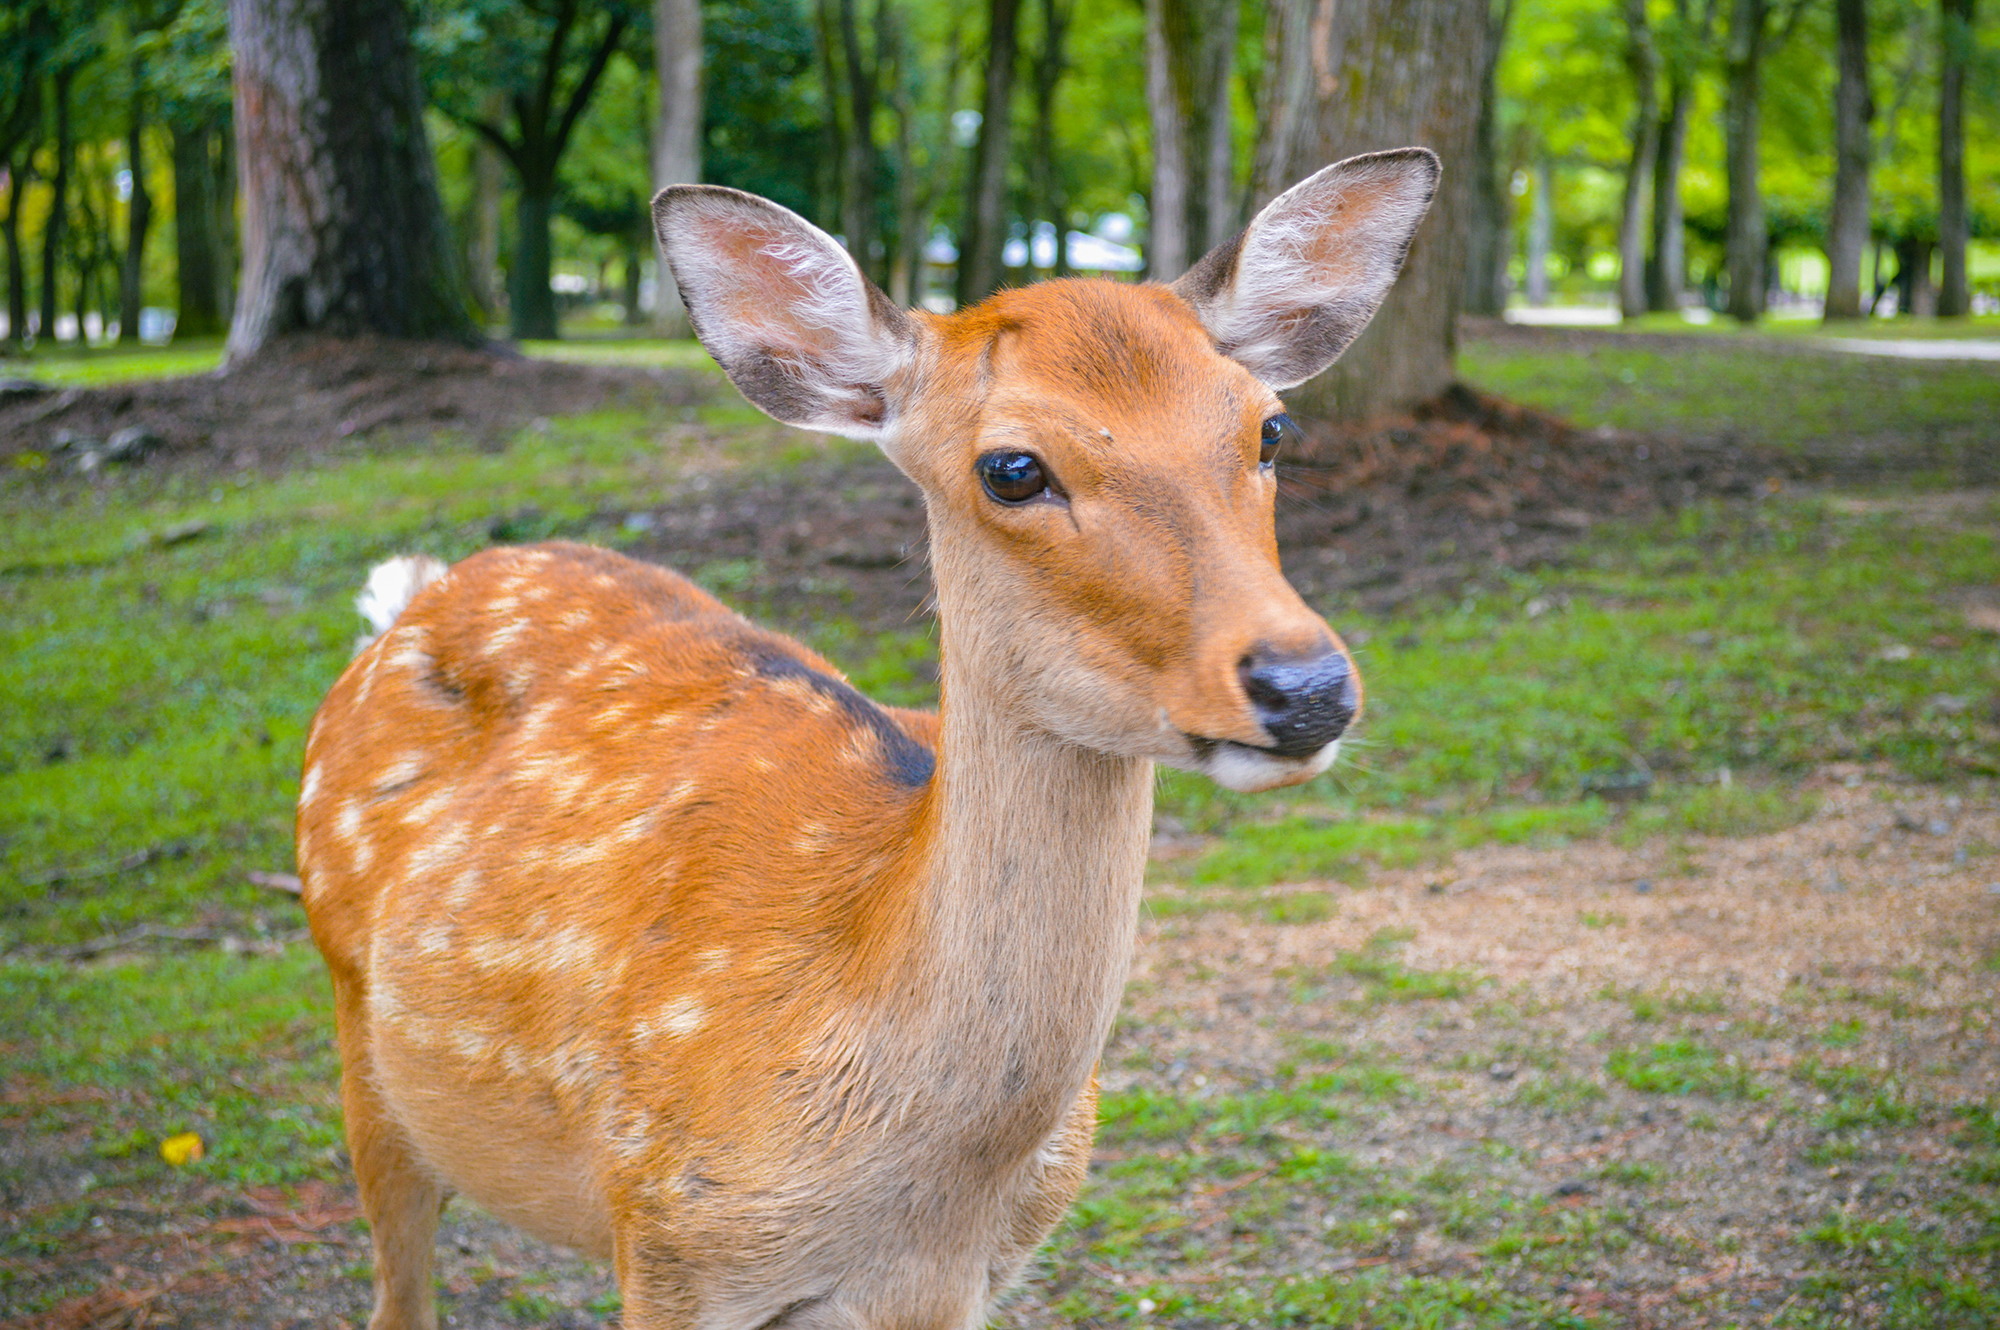 A top thing to do in Japan is to feed a deer at Nara Park!